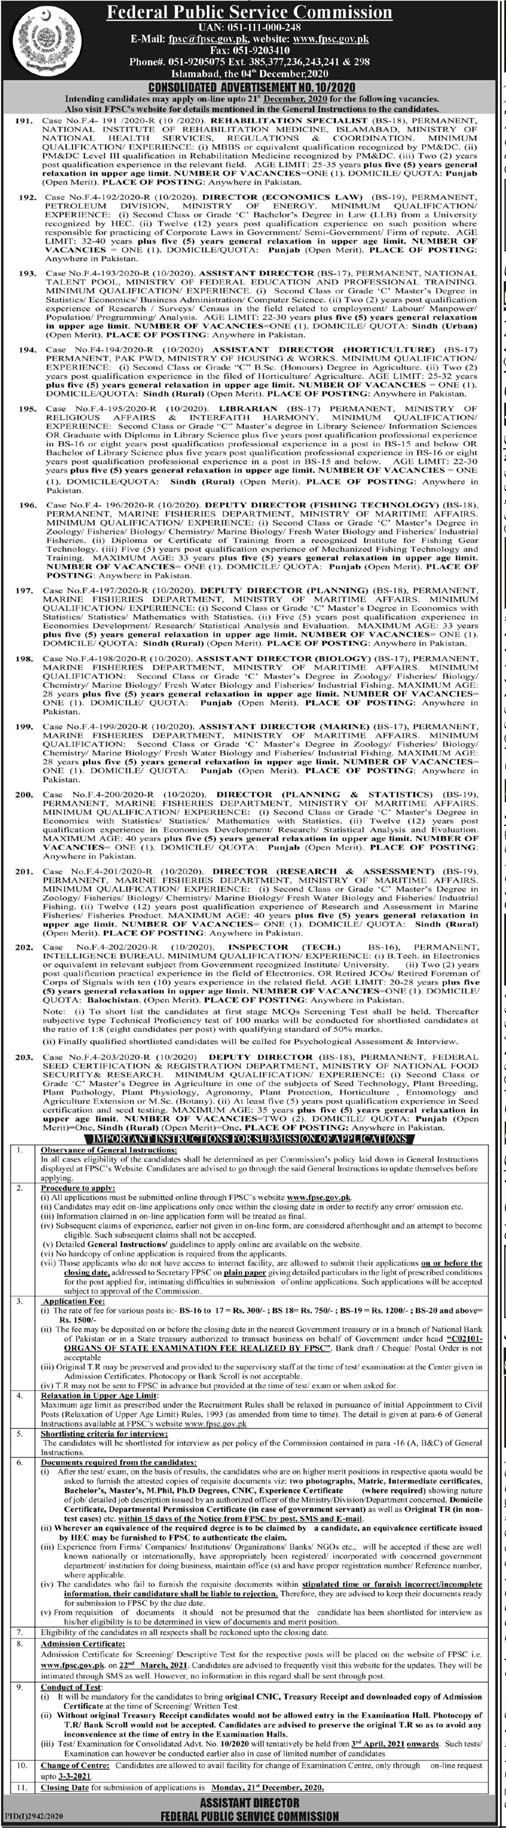 FPSC Jobs 2020 Apply Online Federal Public Service Commission Consolidated advertisement 10/2020 Apply Online